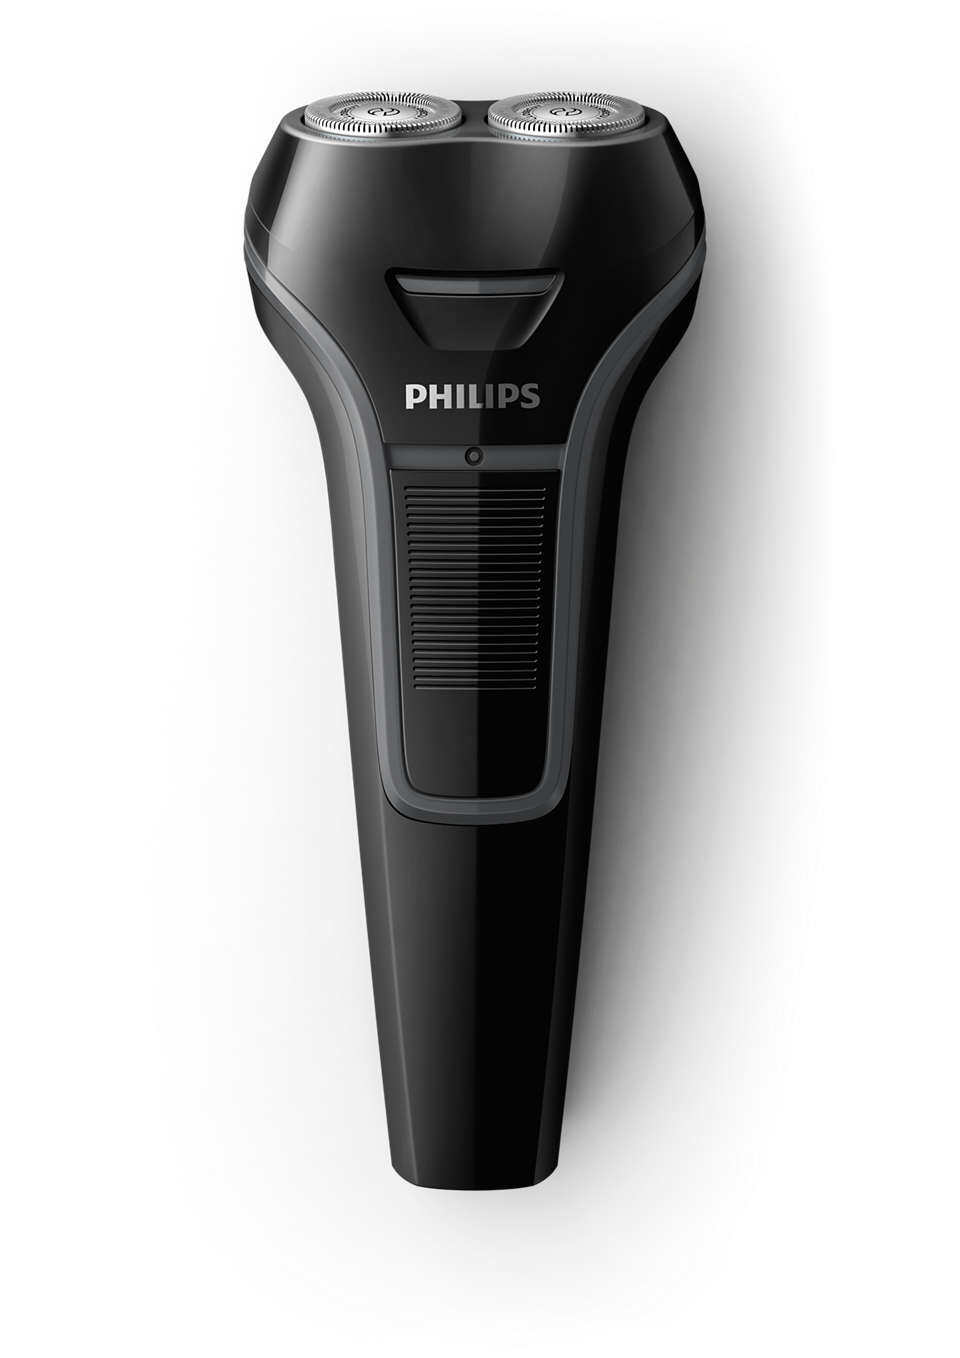 Philips Electric Shaver Rechargeable S106 ( S106/03 ) Pencukur